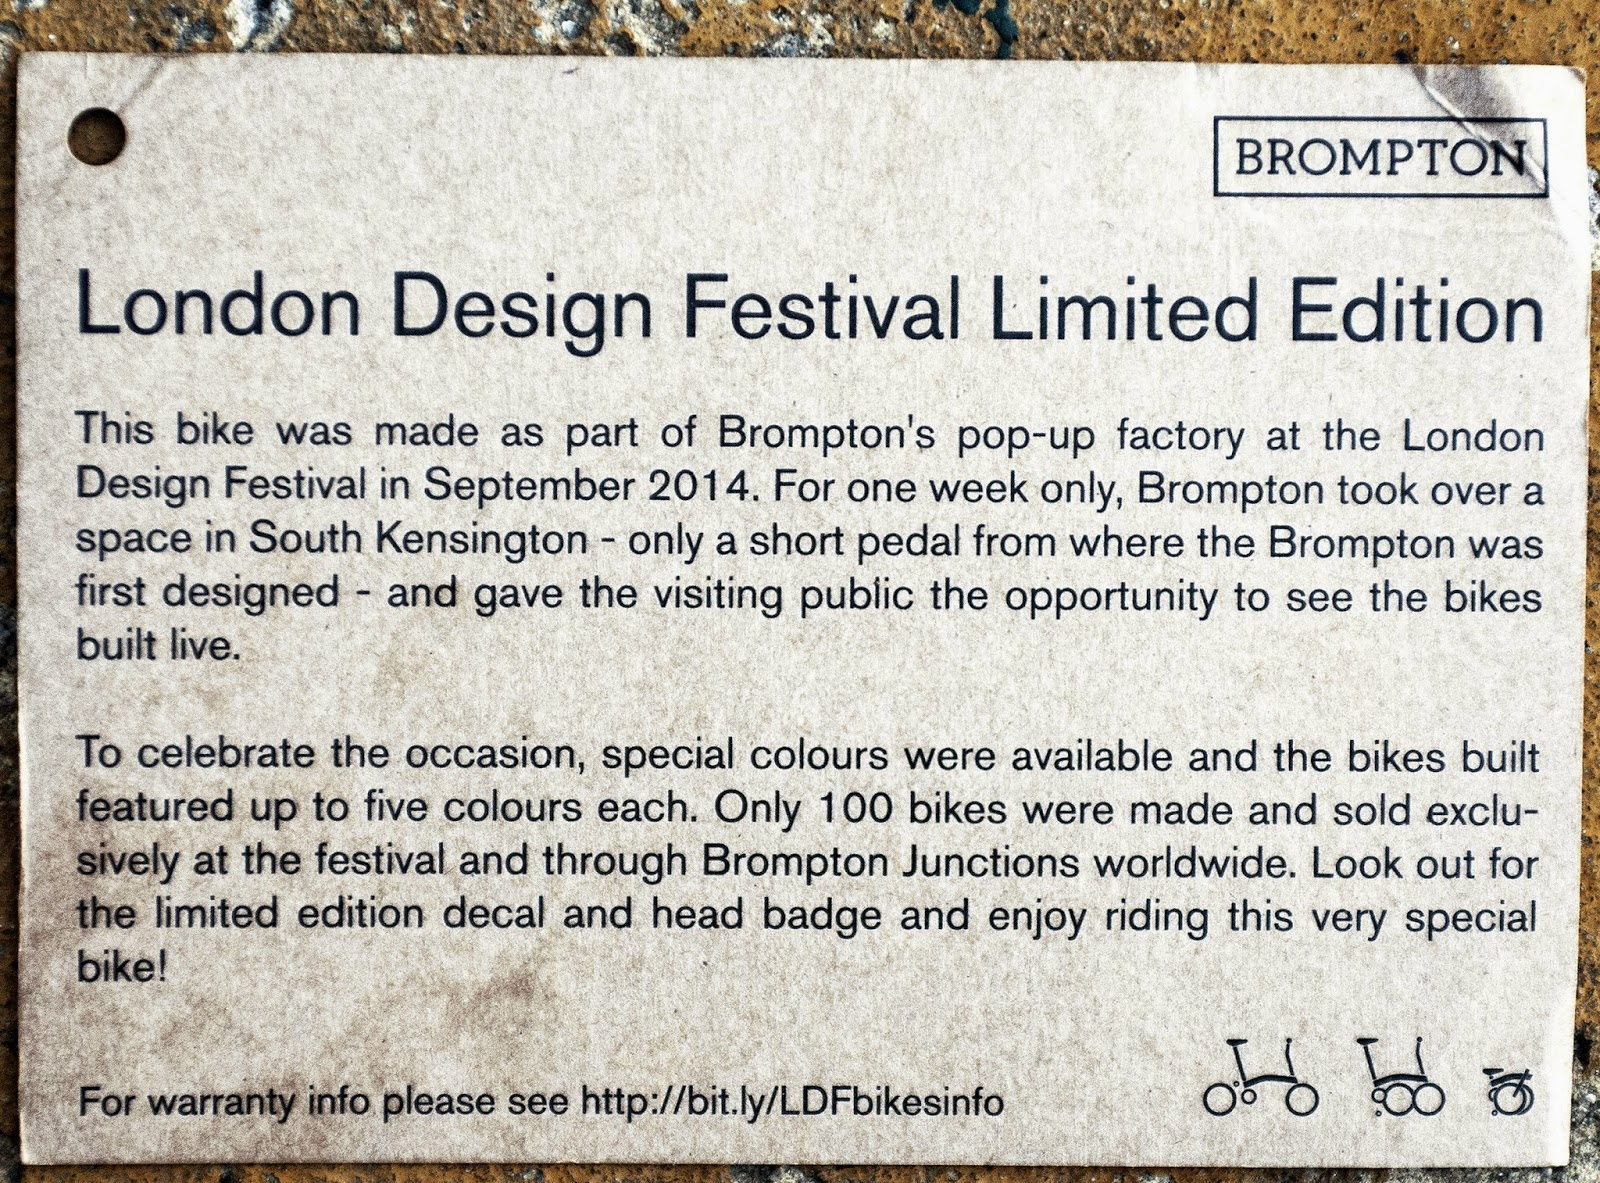 Brompton Limited Edition